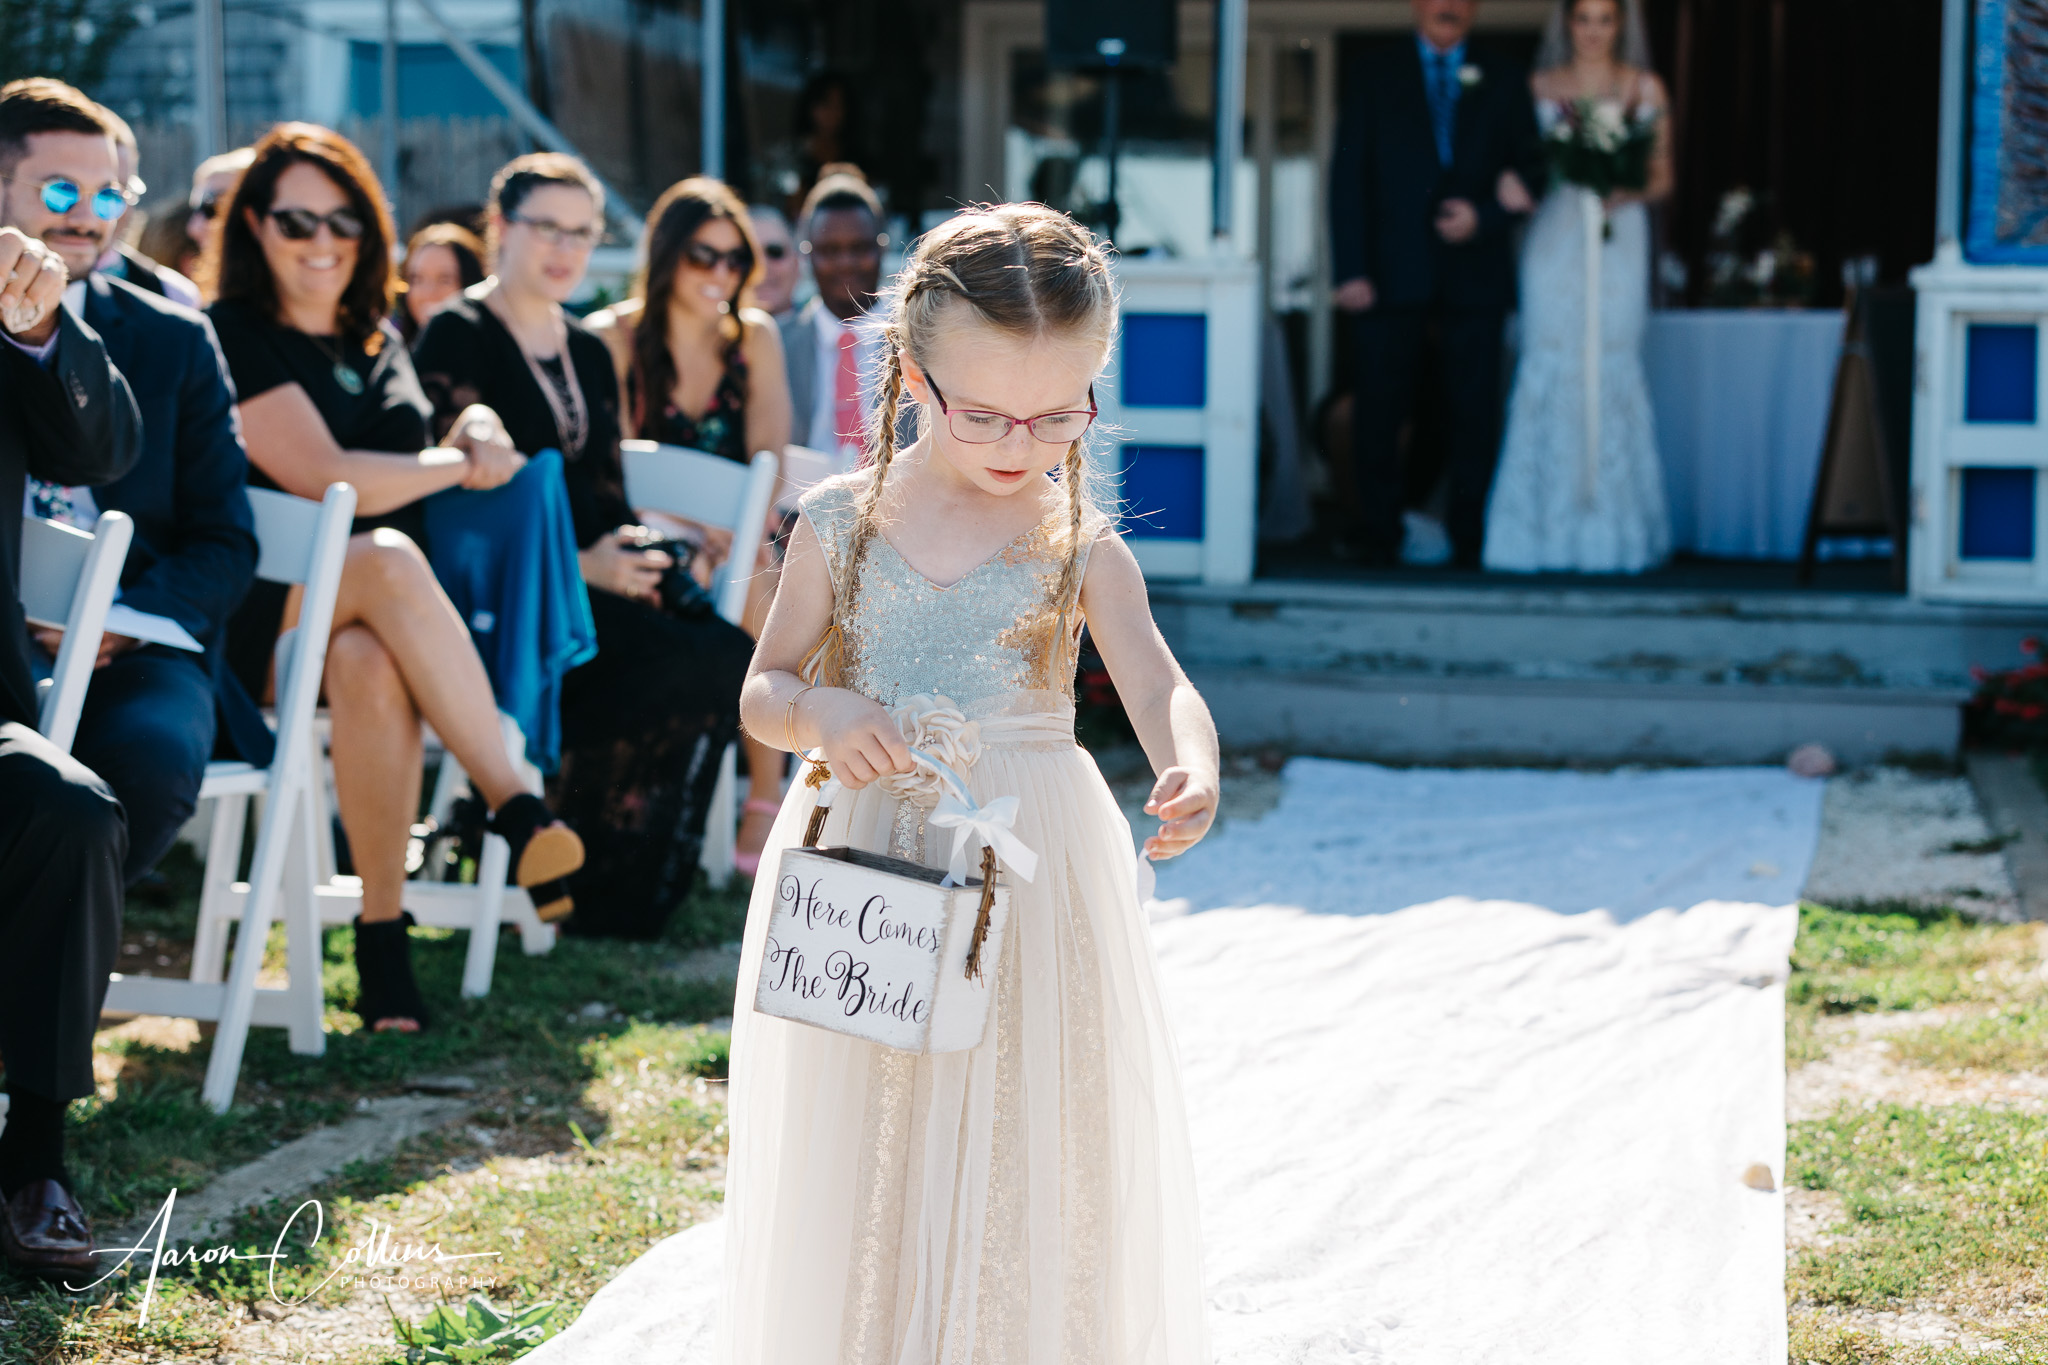 The flower girl drops petals in the aisle.